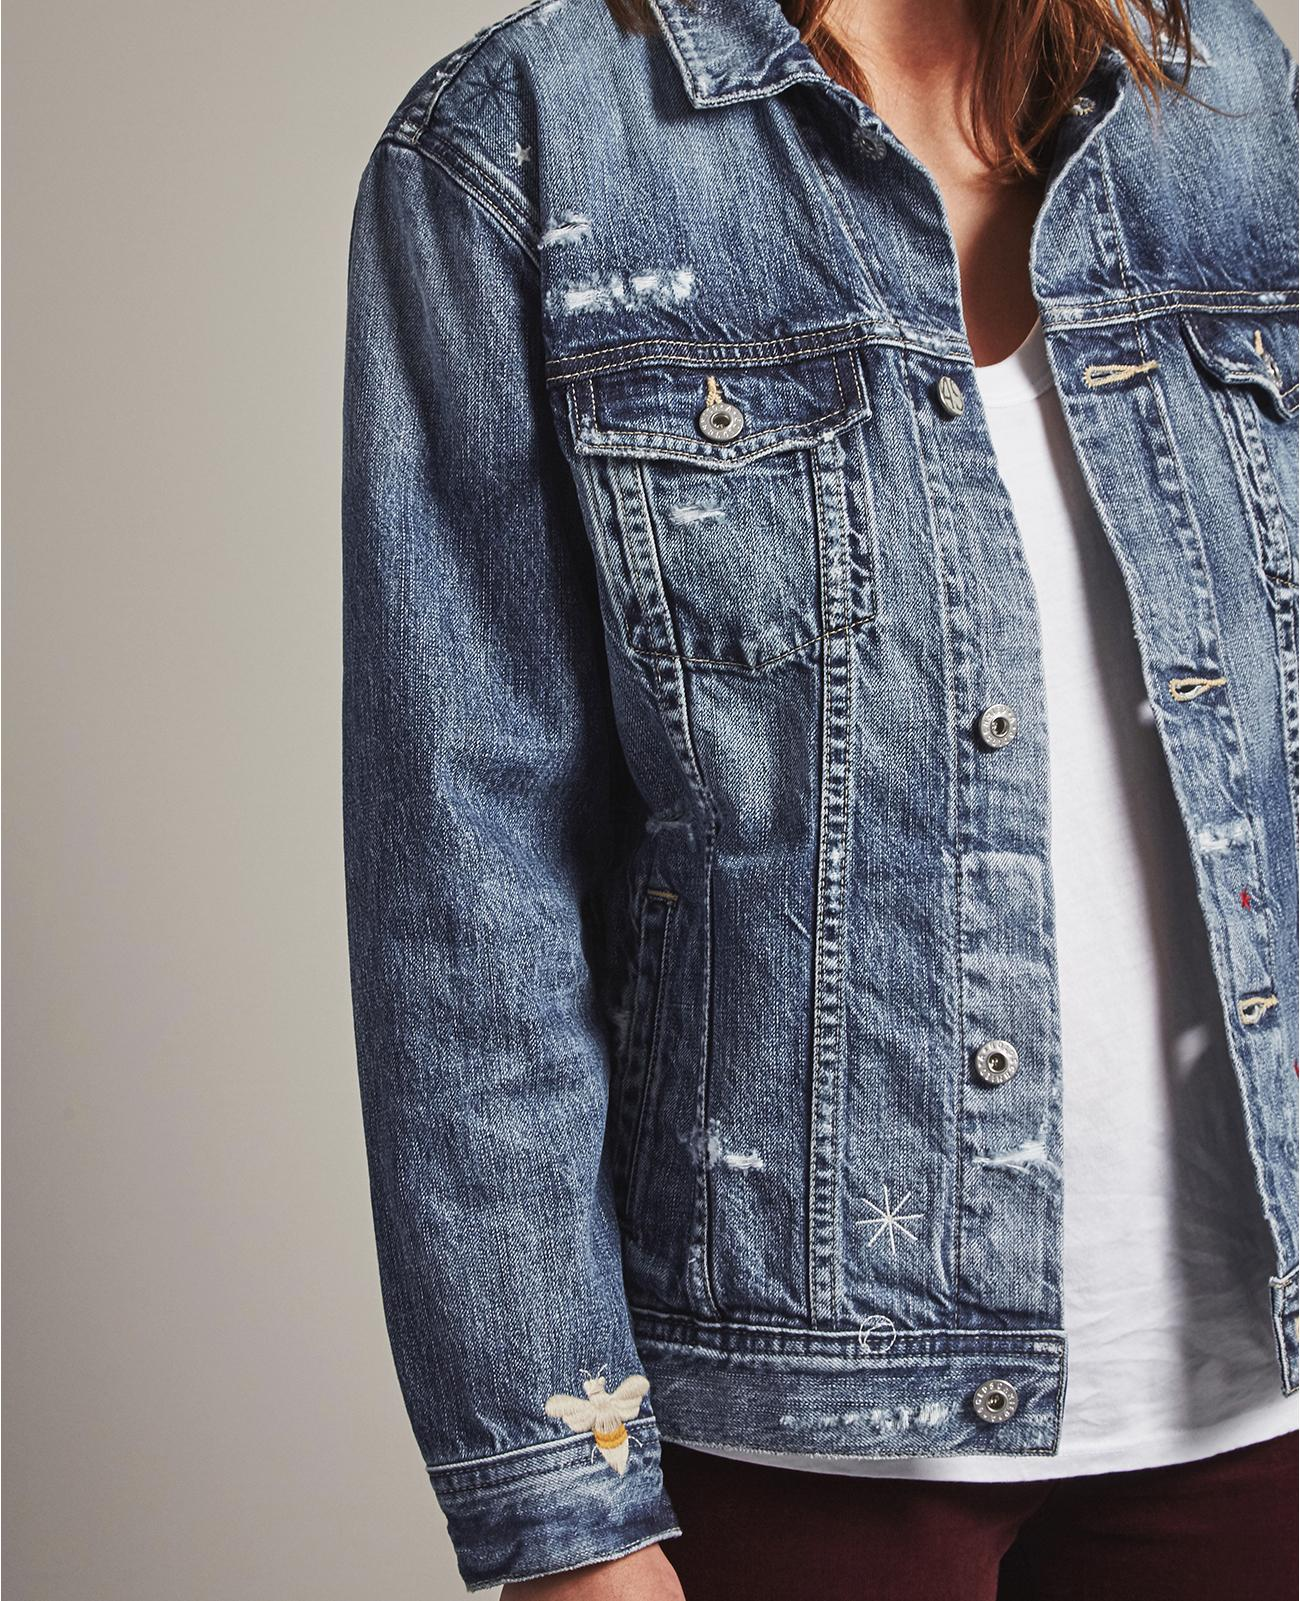 eed02120dab0e The Nancy Jacket in 23 Years - Woven Dream AG Jeans Official Store